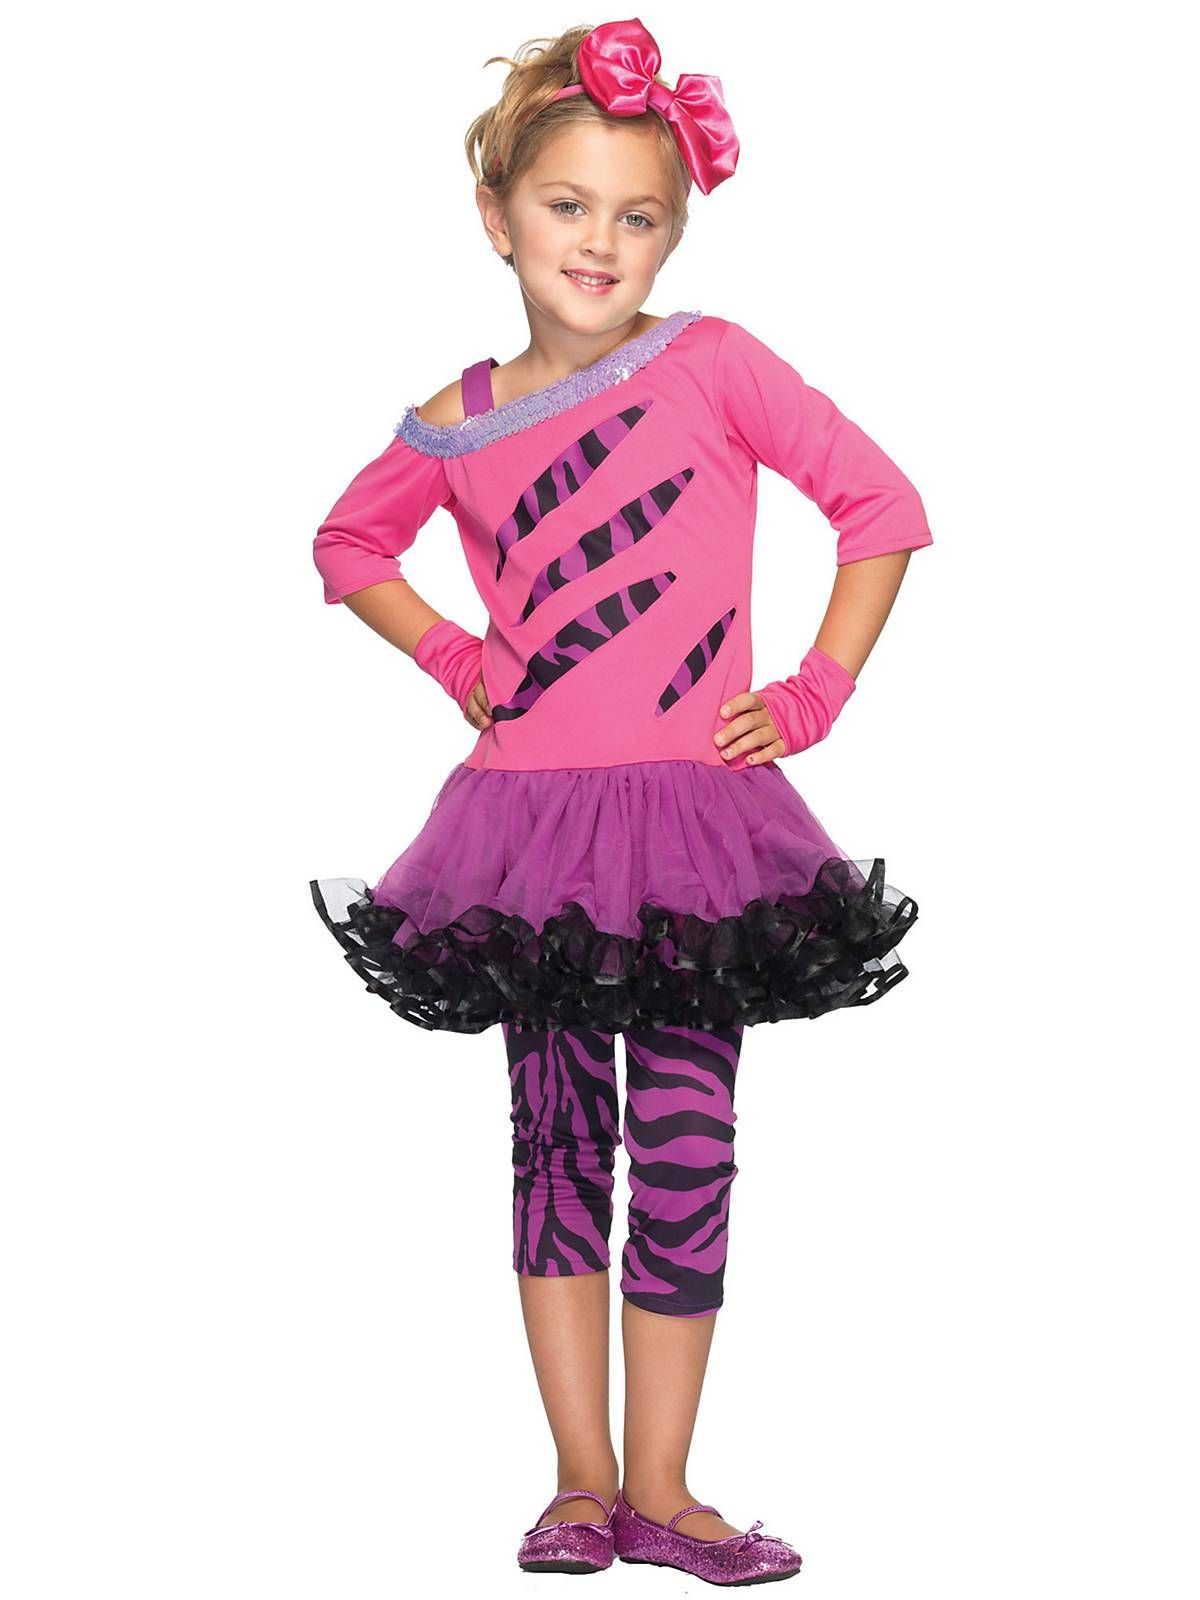 Girls Rockstar Child Costume Costumes | Girls Clearance Costumes ...